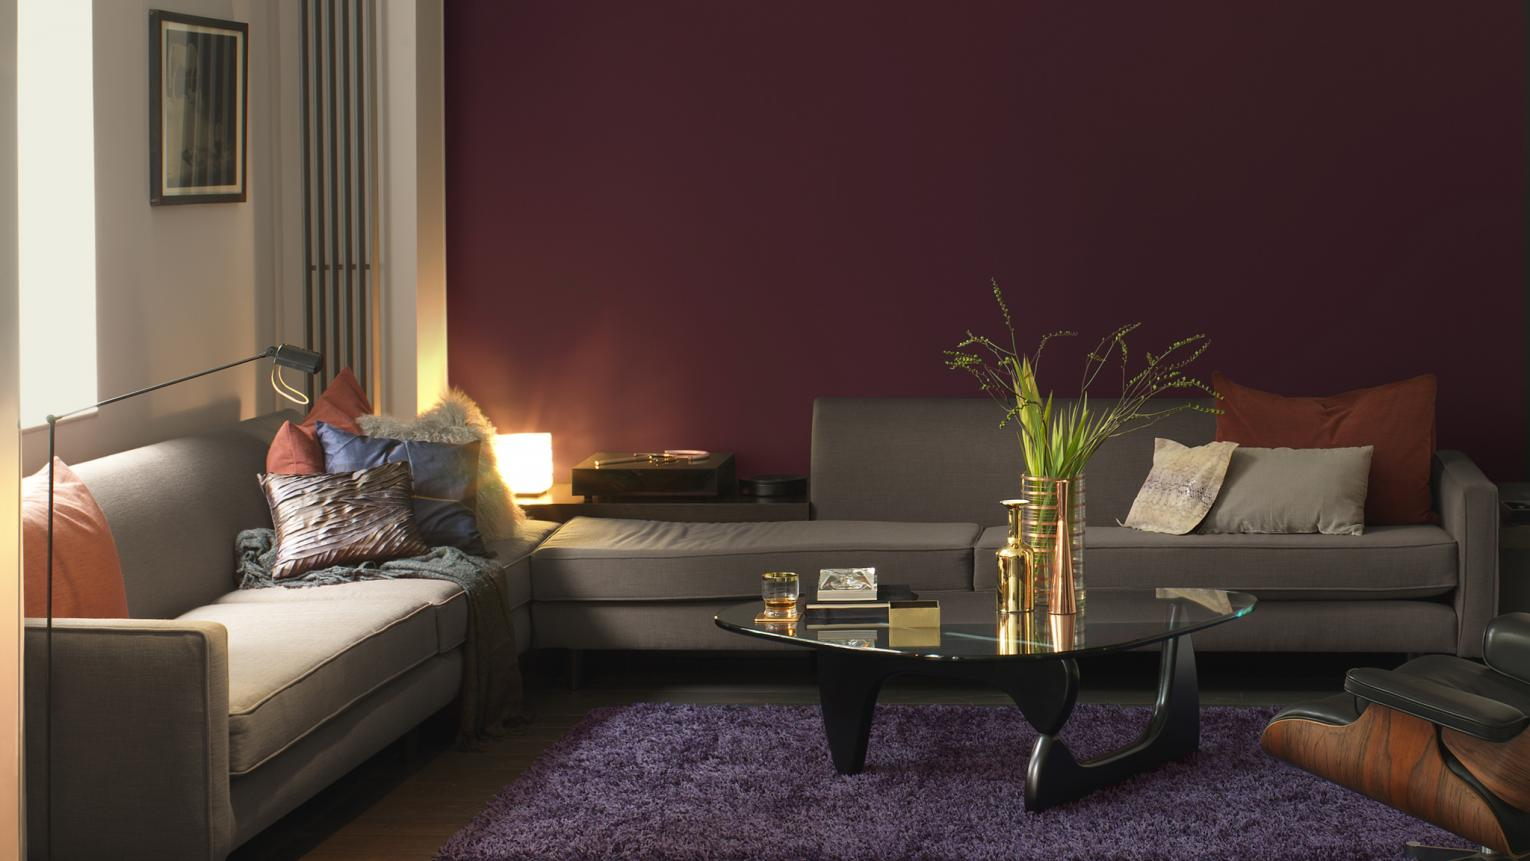 Warm, dark colours create a cosy living room